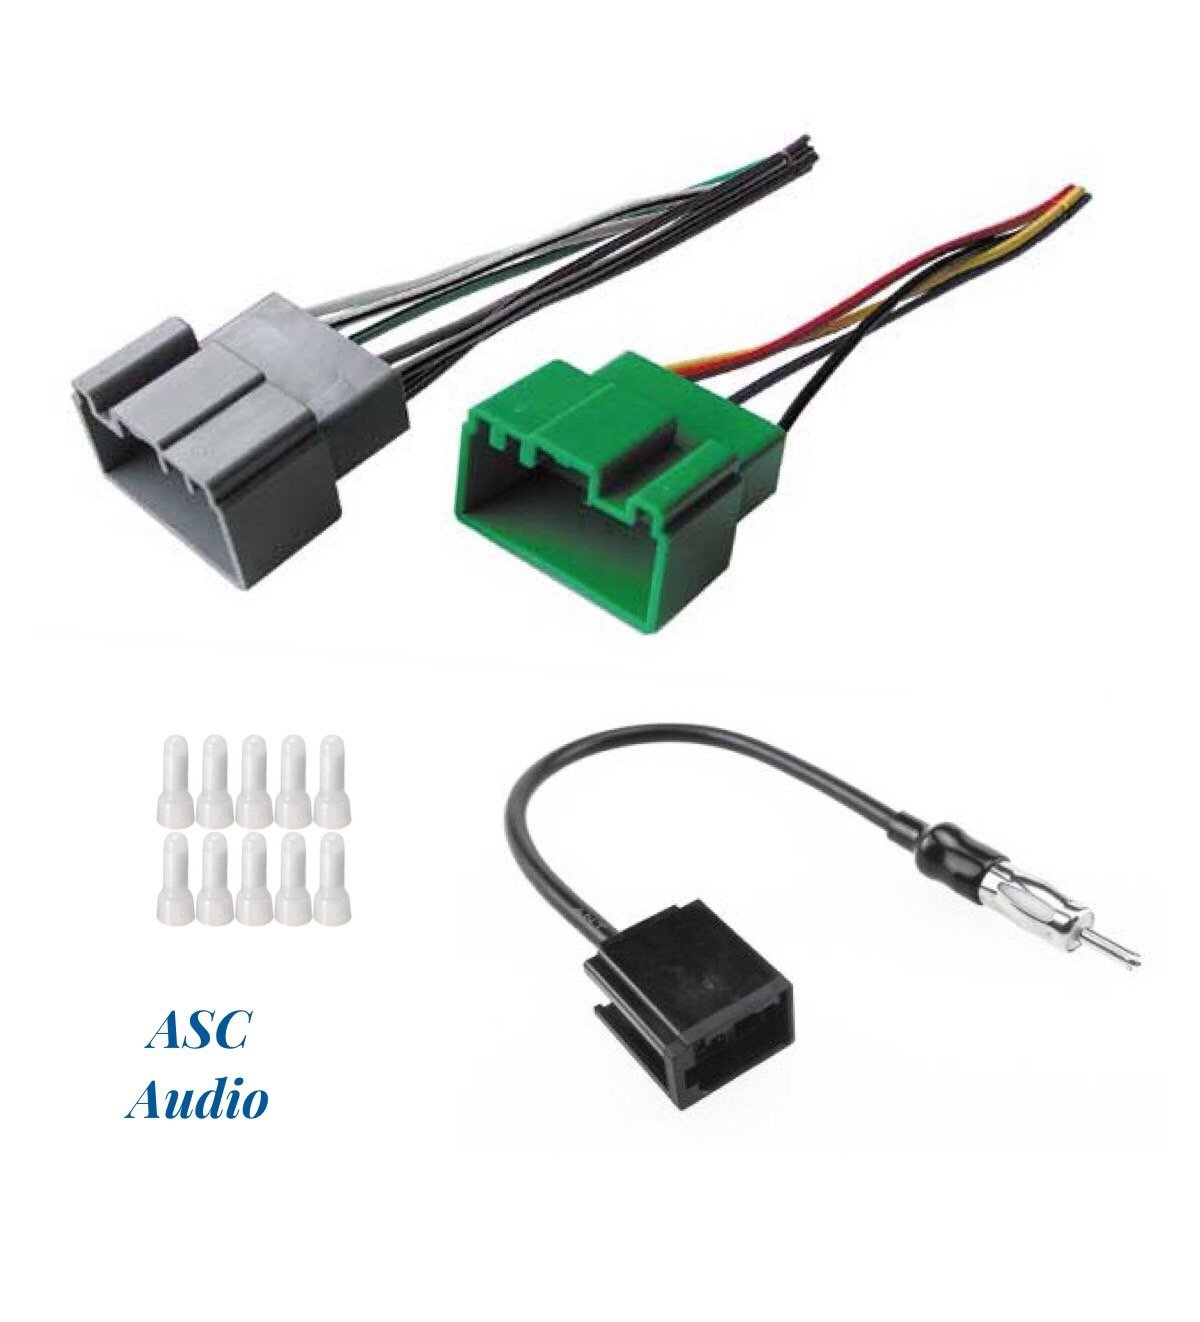 hight resolution of asc audio car stereo radio wire harness and antenna adapter to install an aftermarket radio for